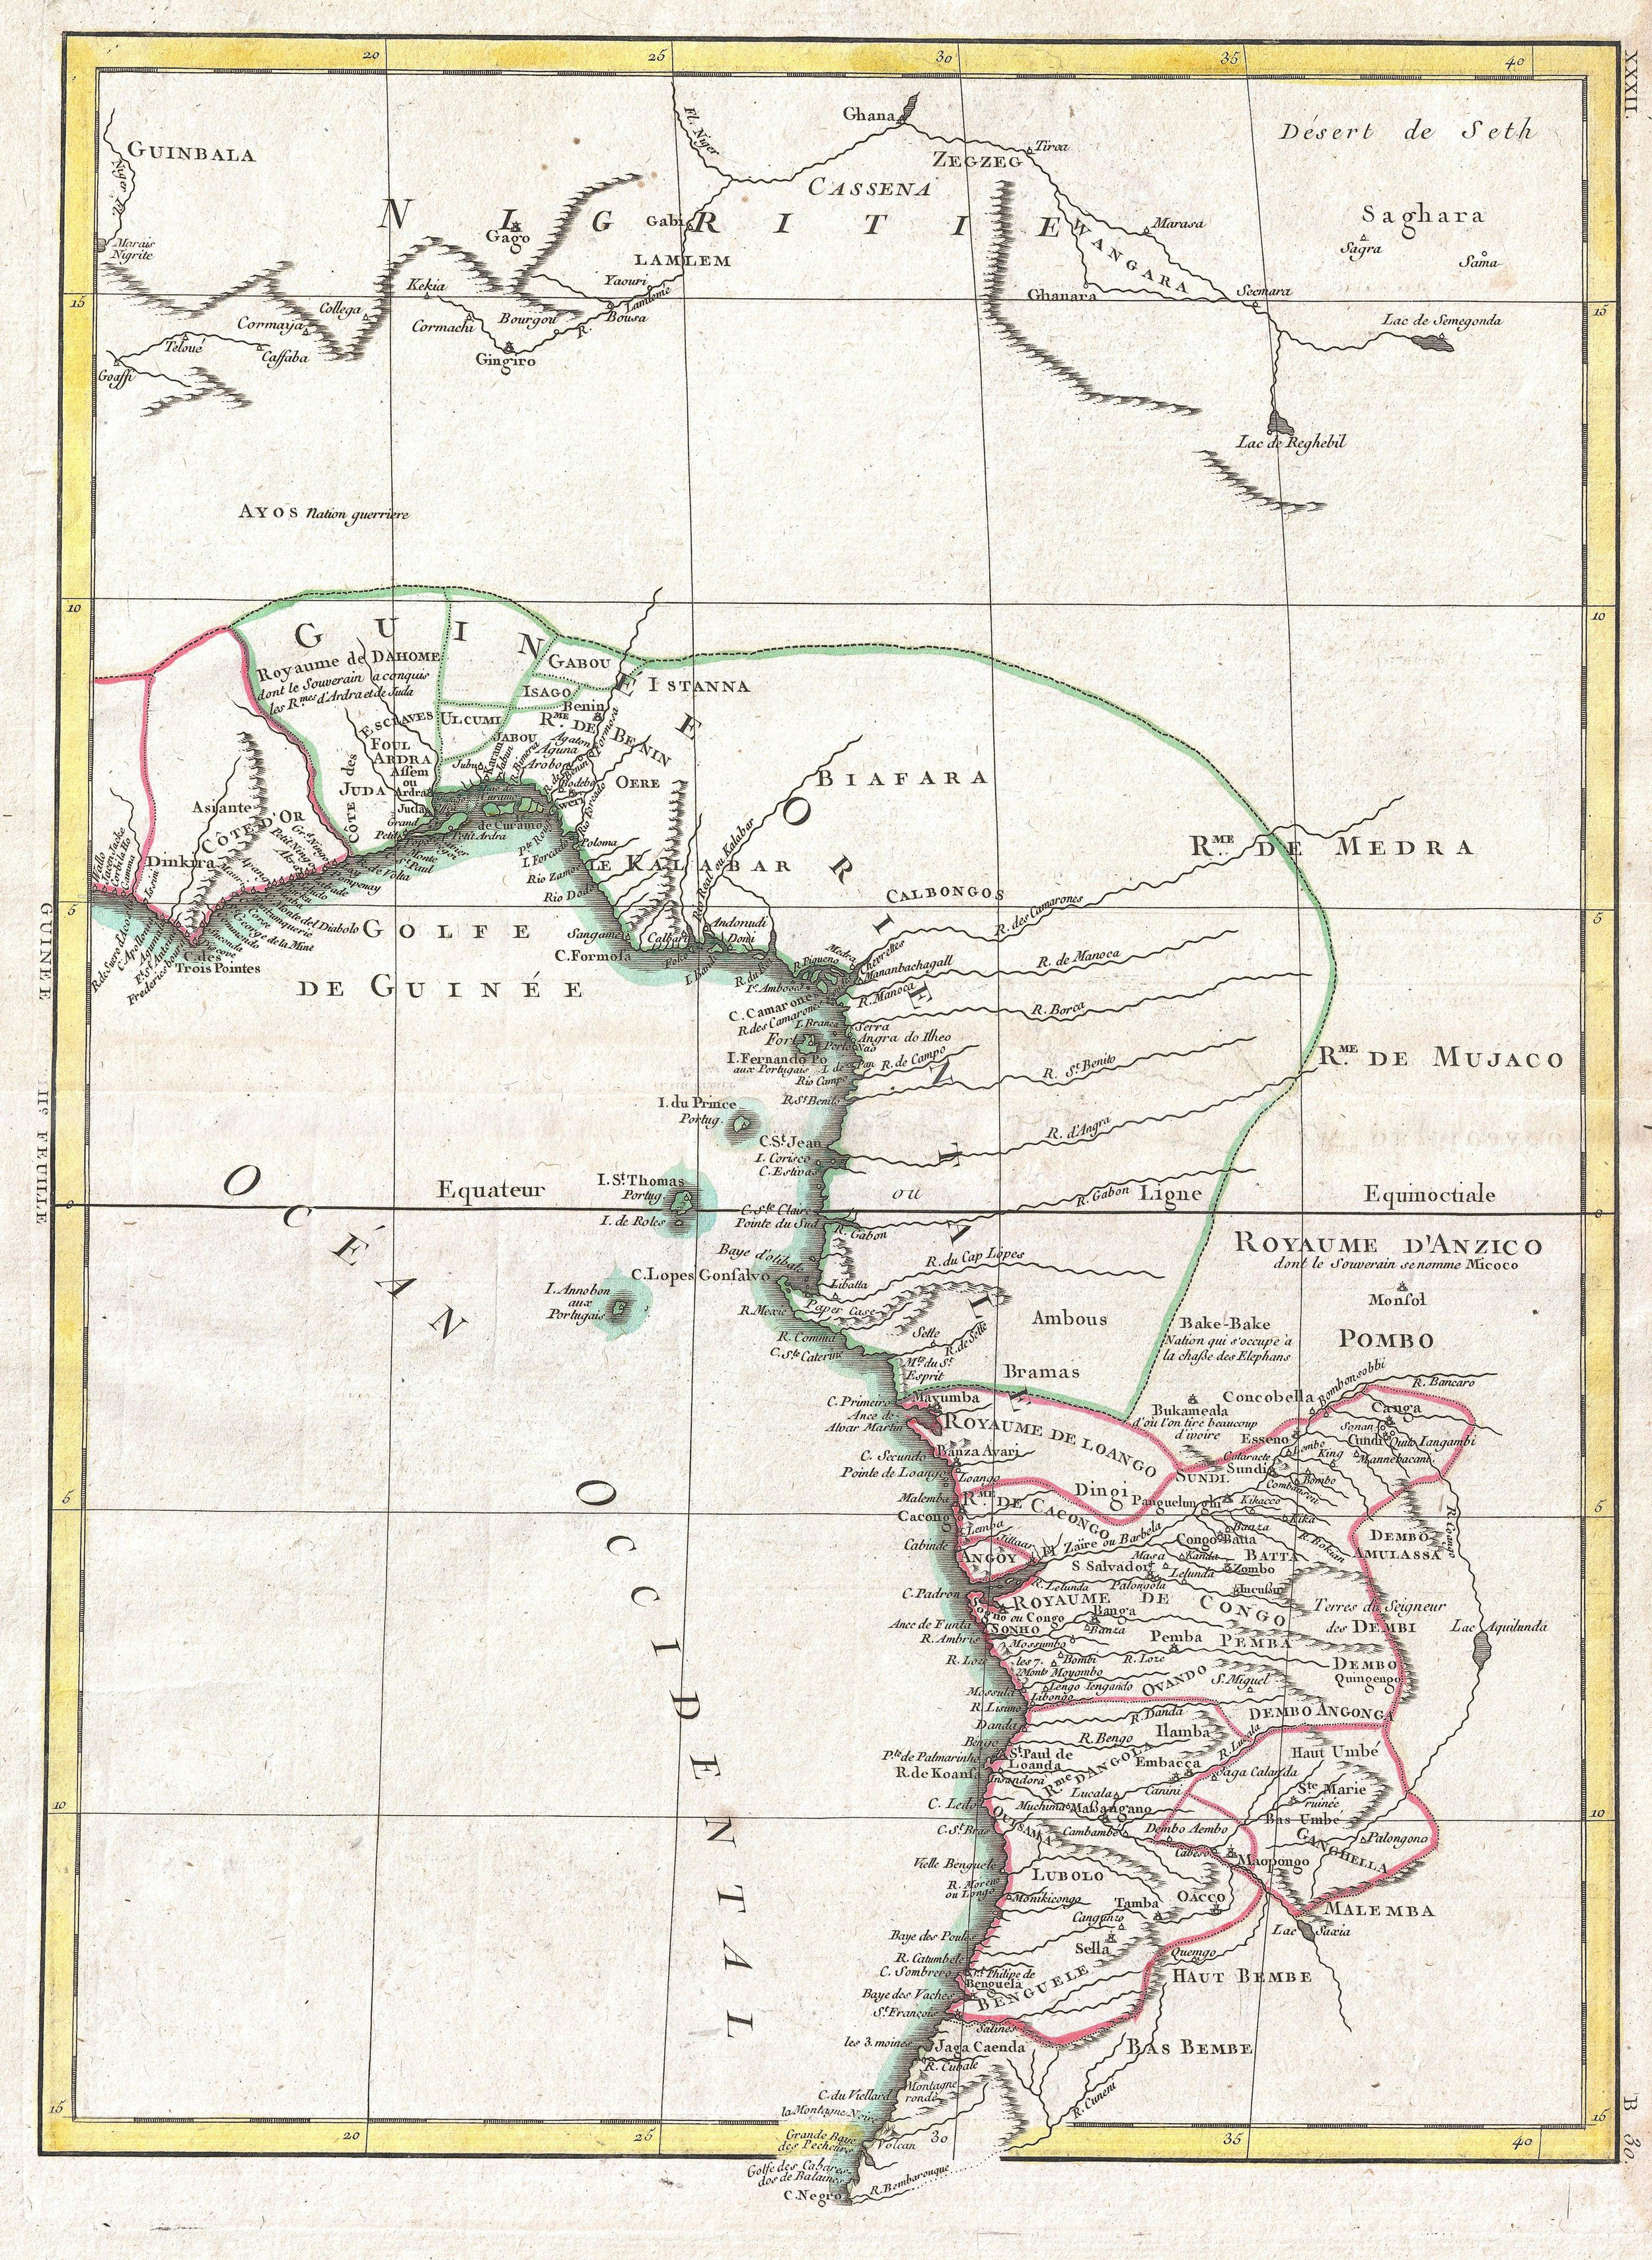 FIgure 3: Upper and Lower Guinea, West Africa